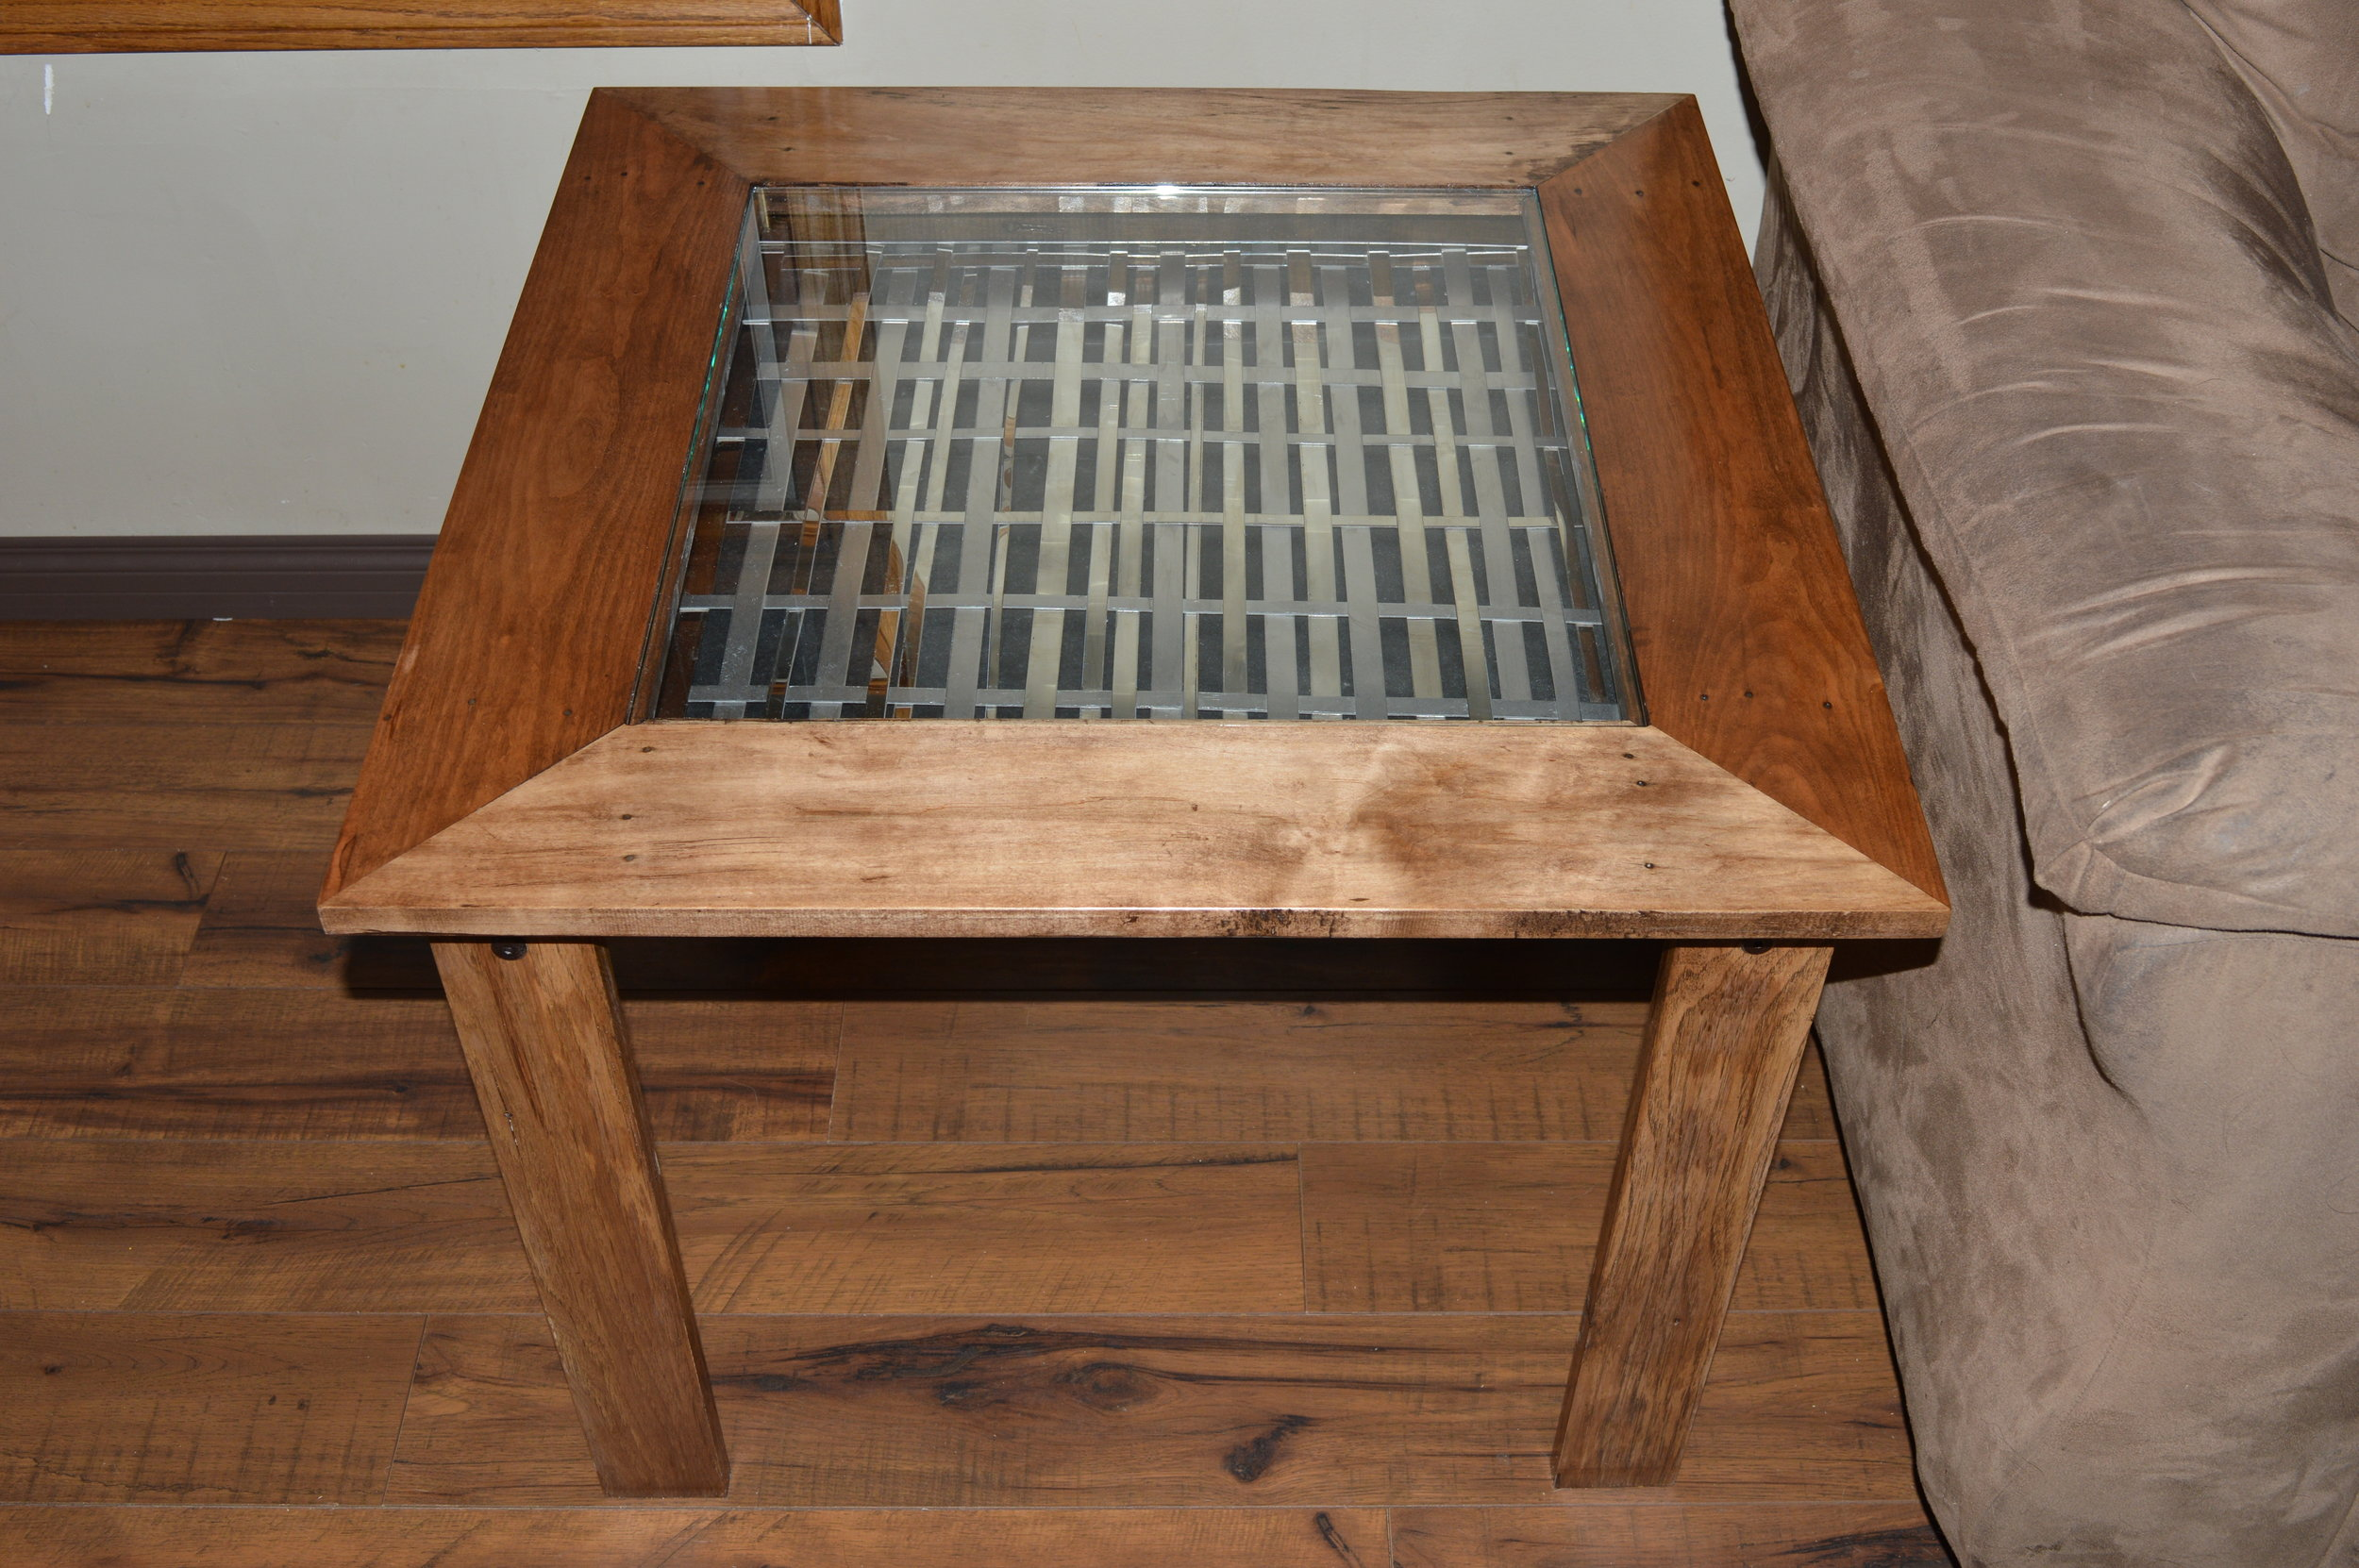 Reclaimed Pallet Wood End Table with Stainless Weave insert